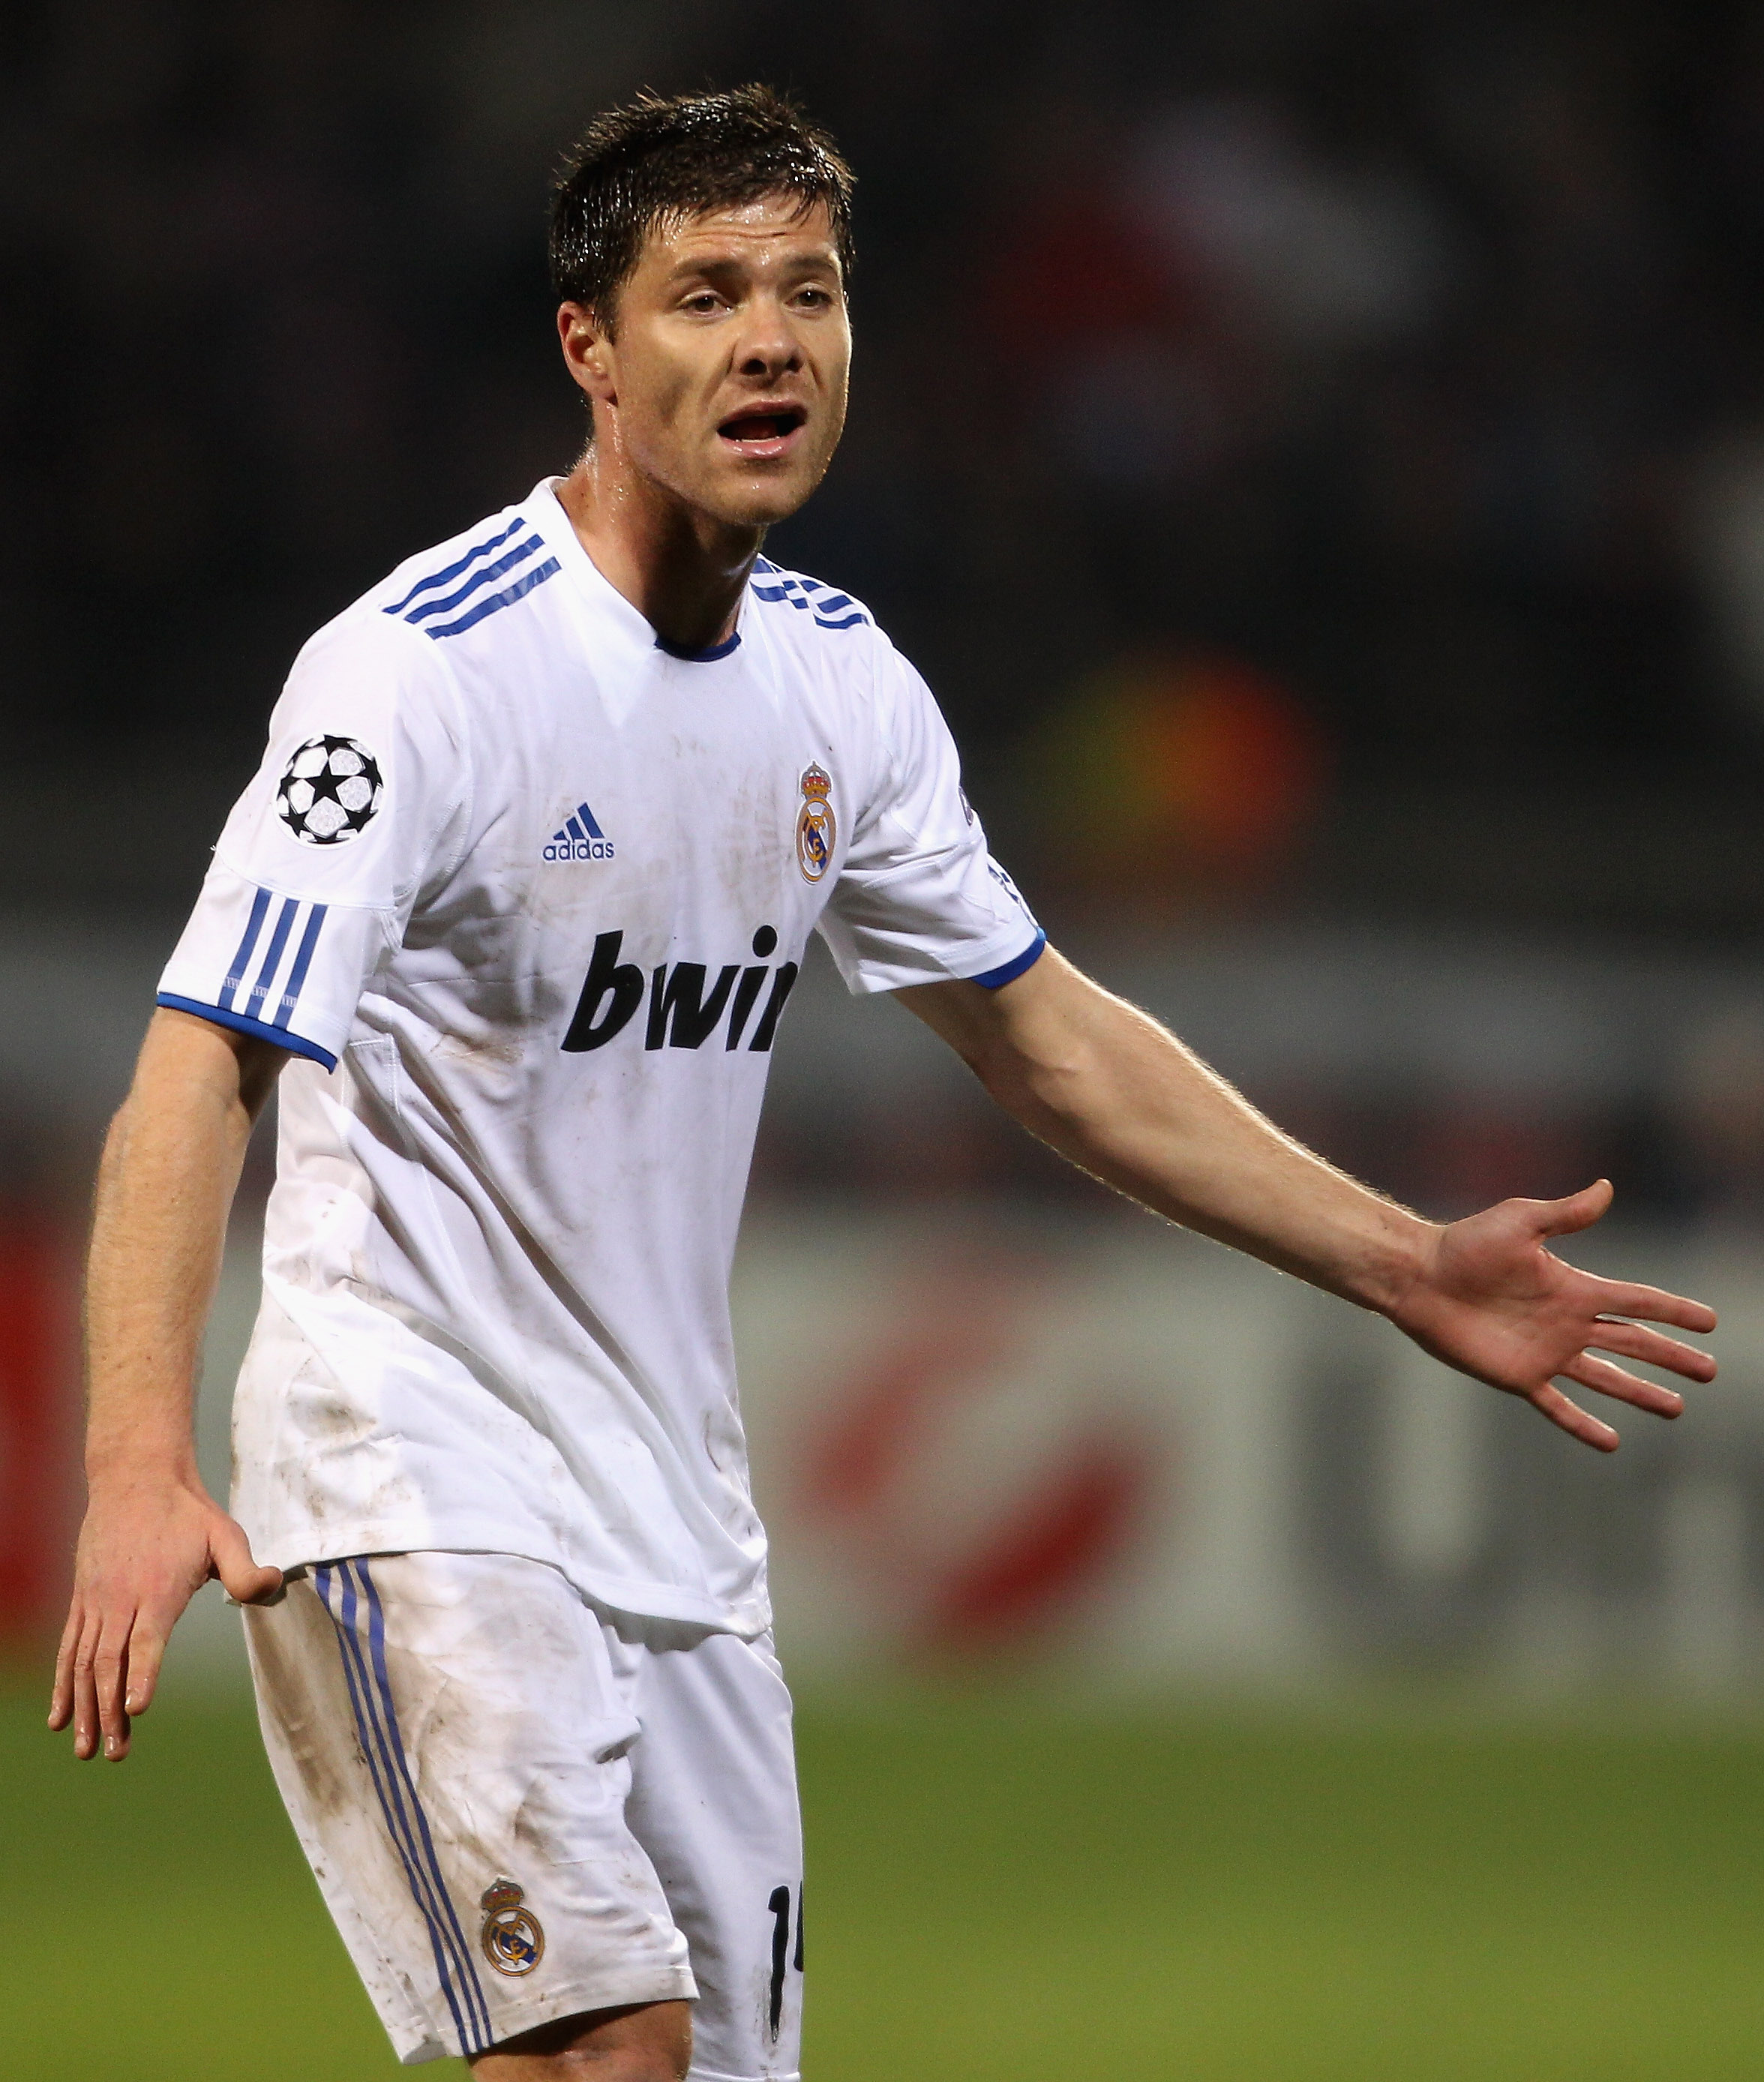 LYON, FRANCE - FEBRUARY 22: Xabi Alonso of Real Madrid during the Champions League match between Lyon and Real Madrid at Stade Gerland on February 22, 2011 in Lyon, France.  (Photo by Scott Heavey/Getty Images)